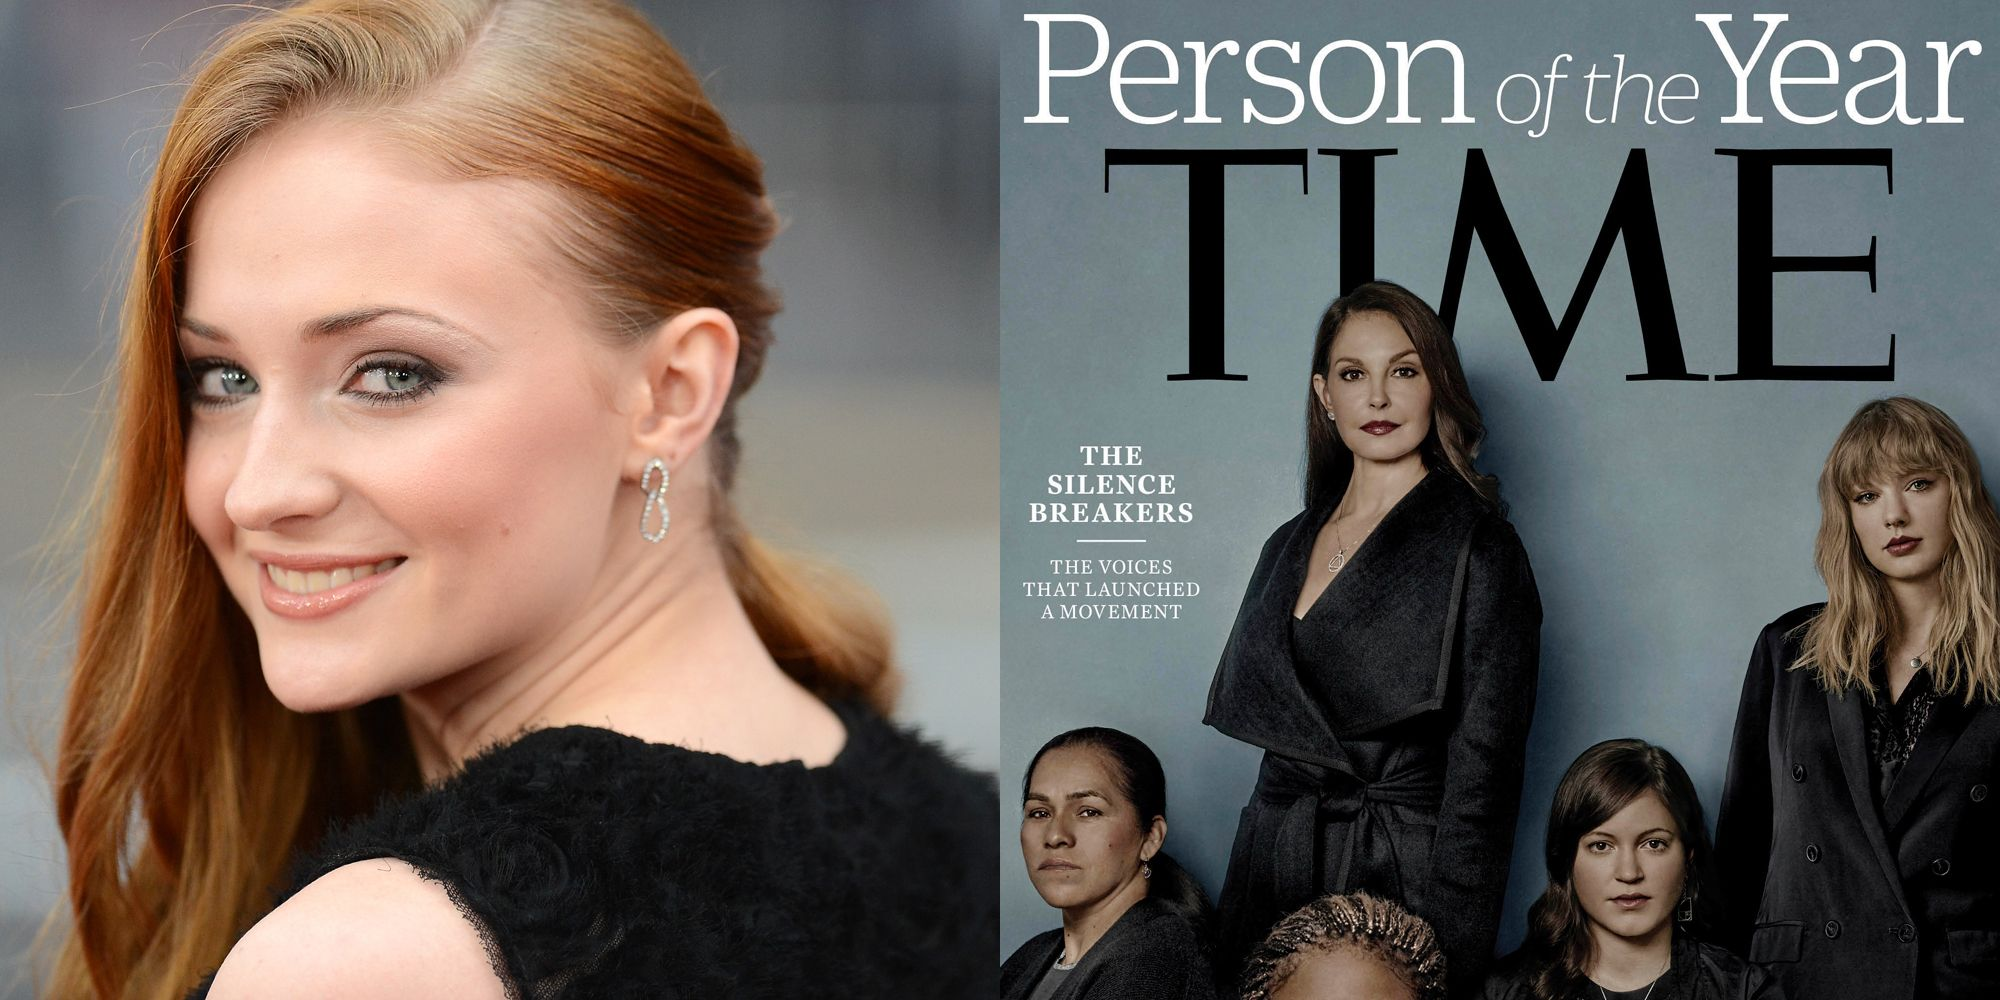 Sophie Turner Shuts Down Critic Who Said Taylor Swift Shouldn't Be on Time's Cover